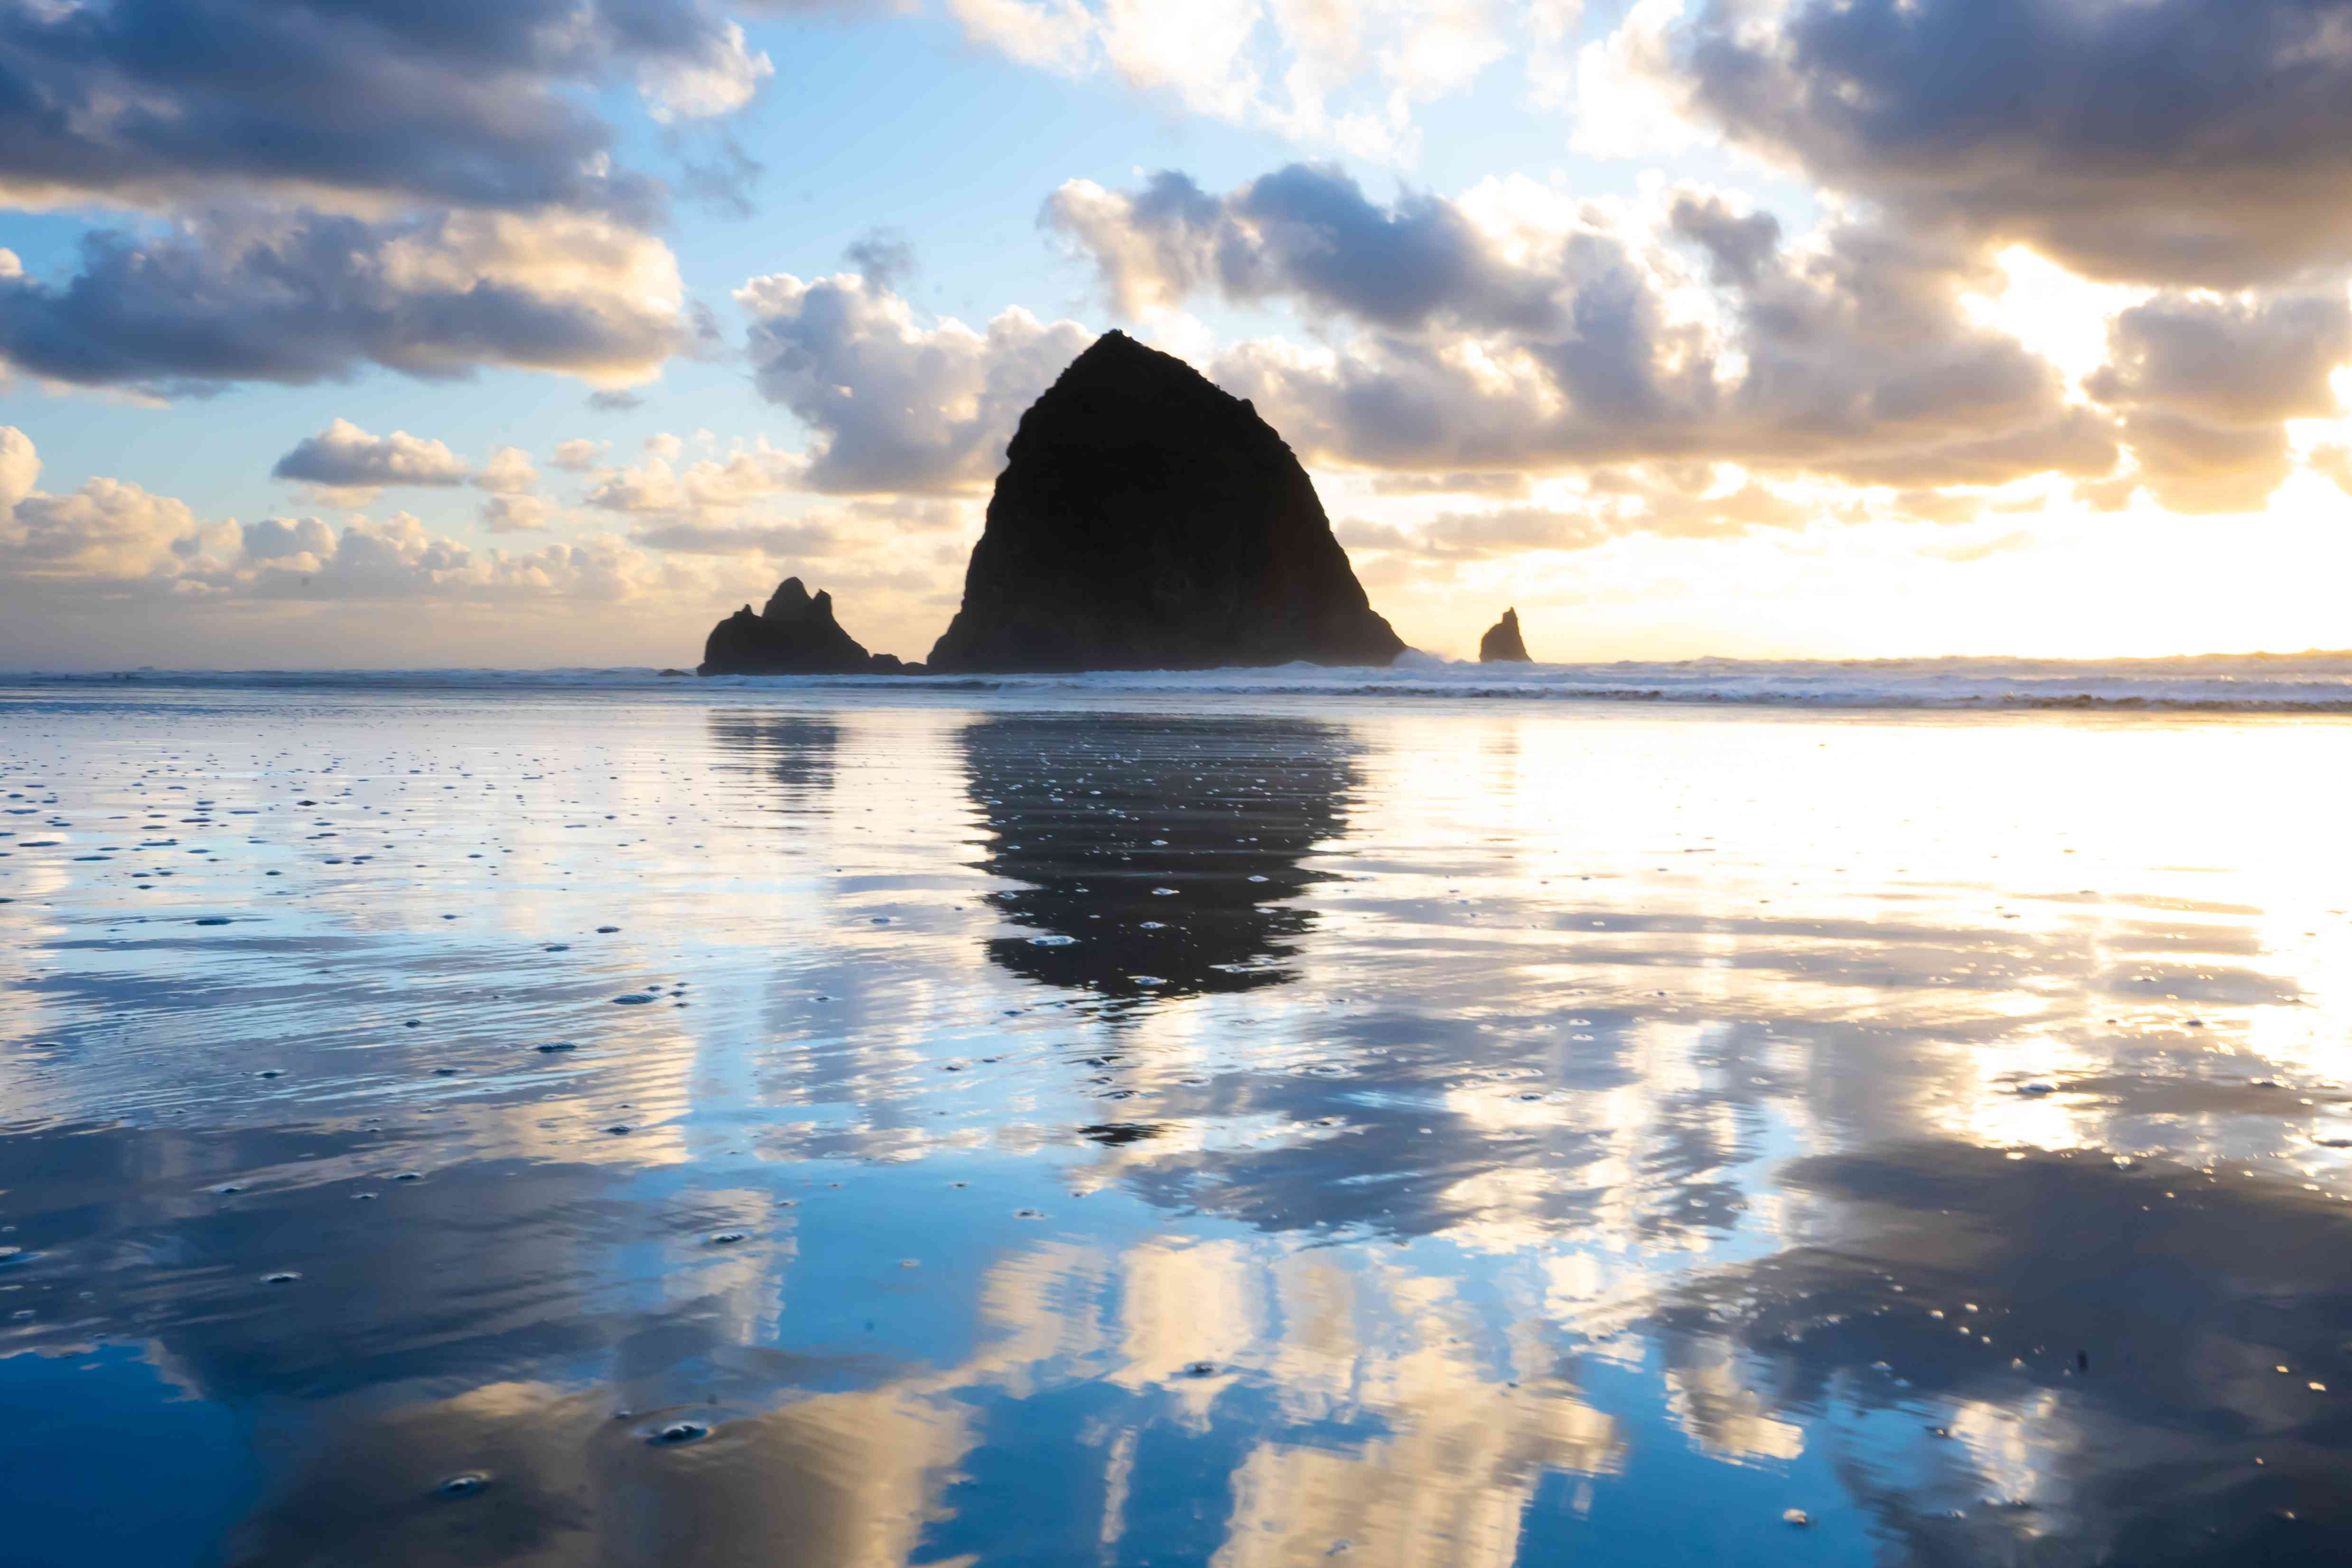 Haystack Rock reflected in the water during sunset